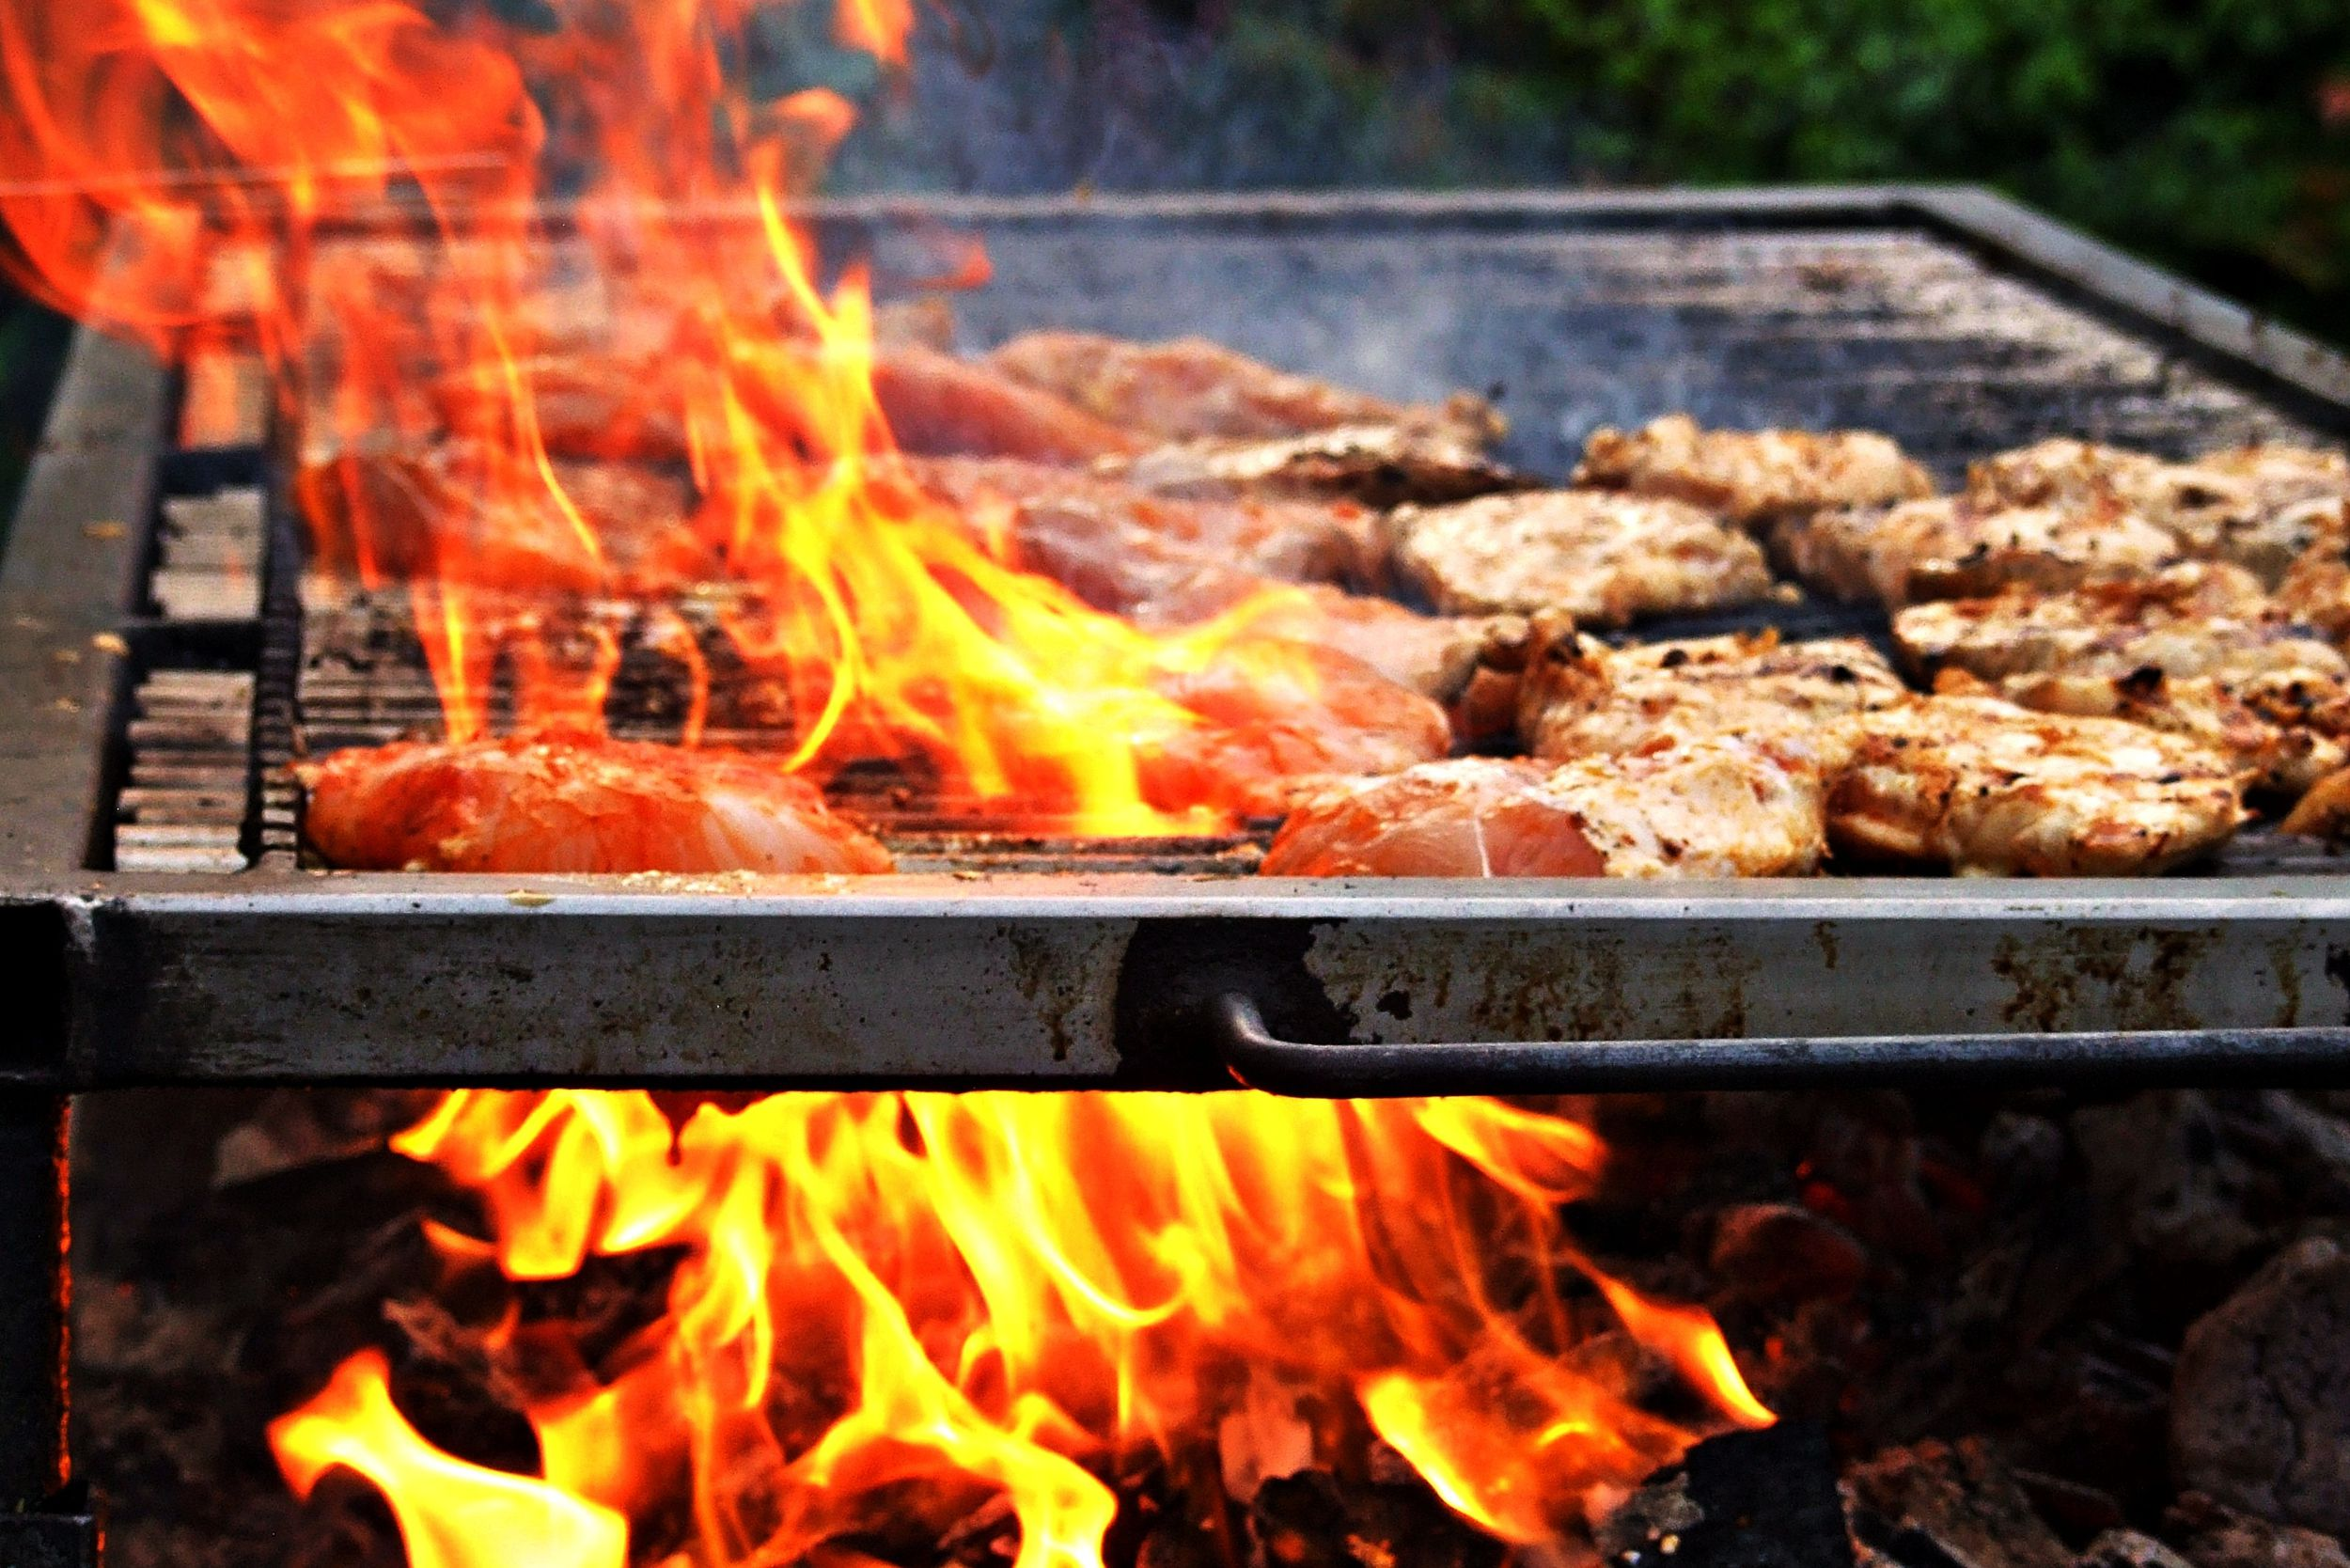 How to Prevent and Control Grilling Flare ups